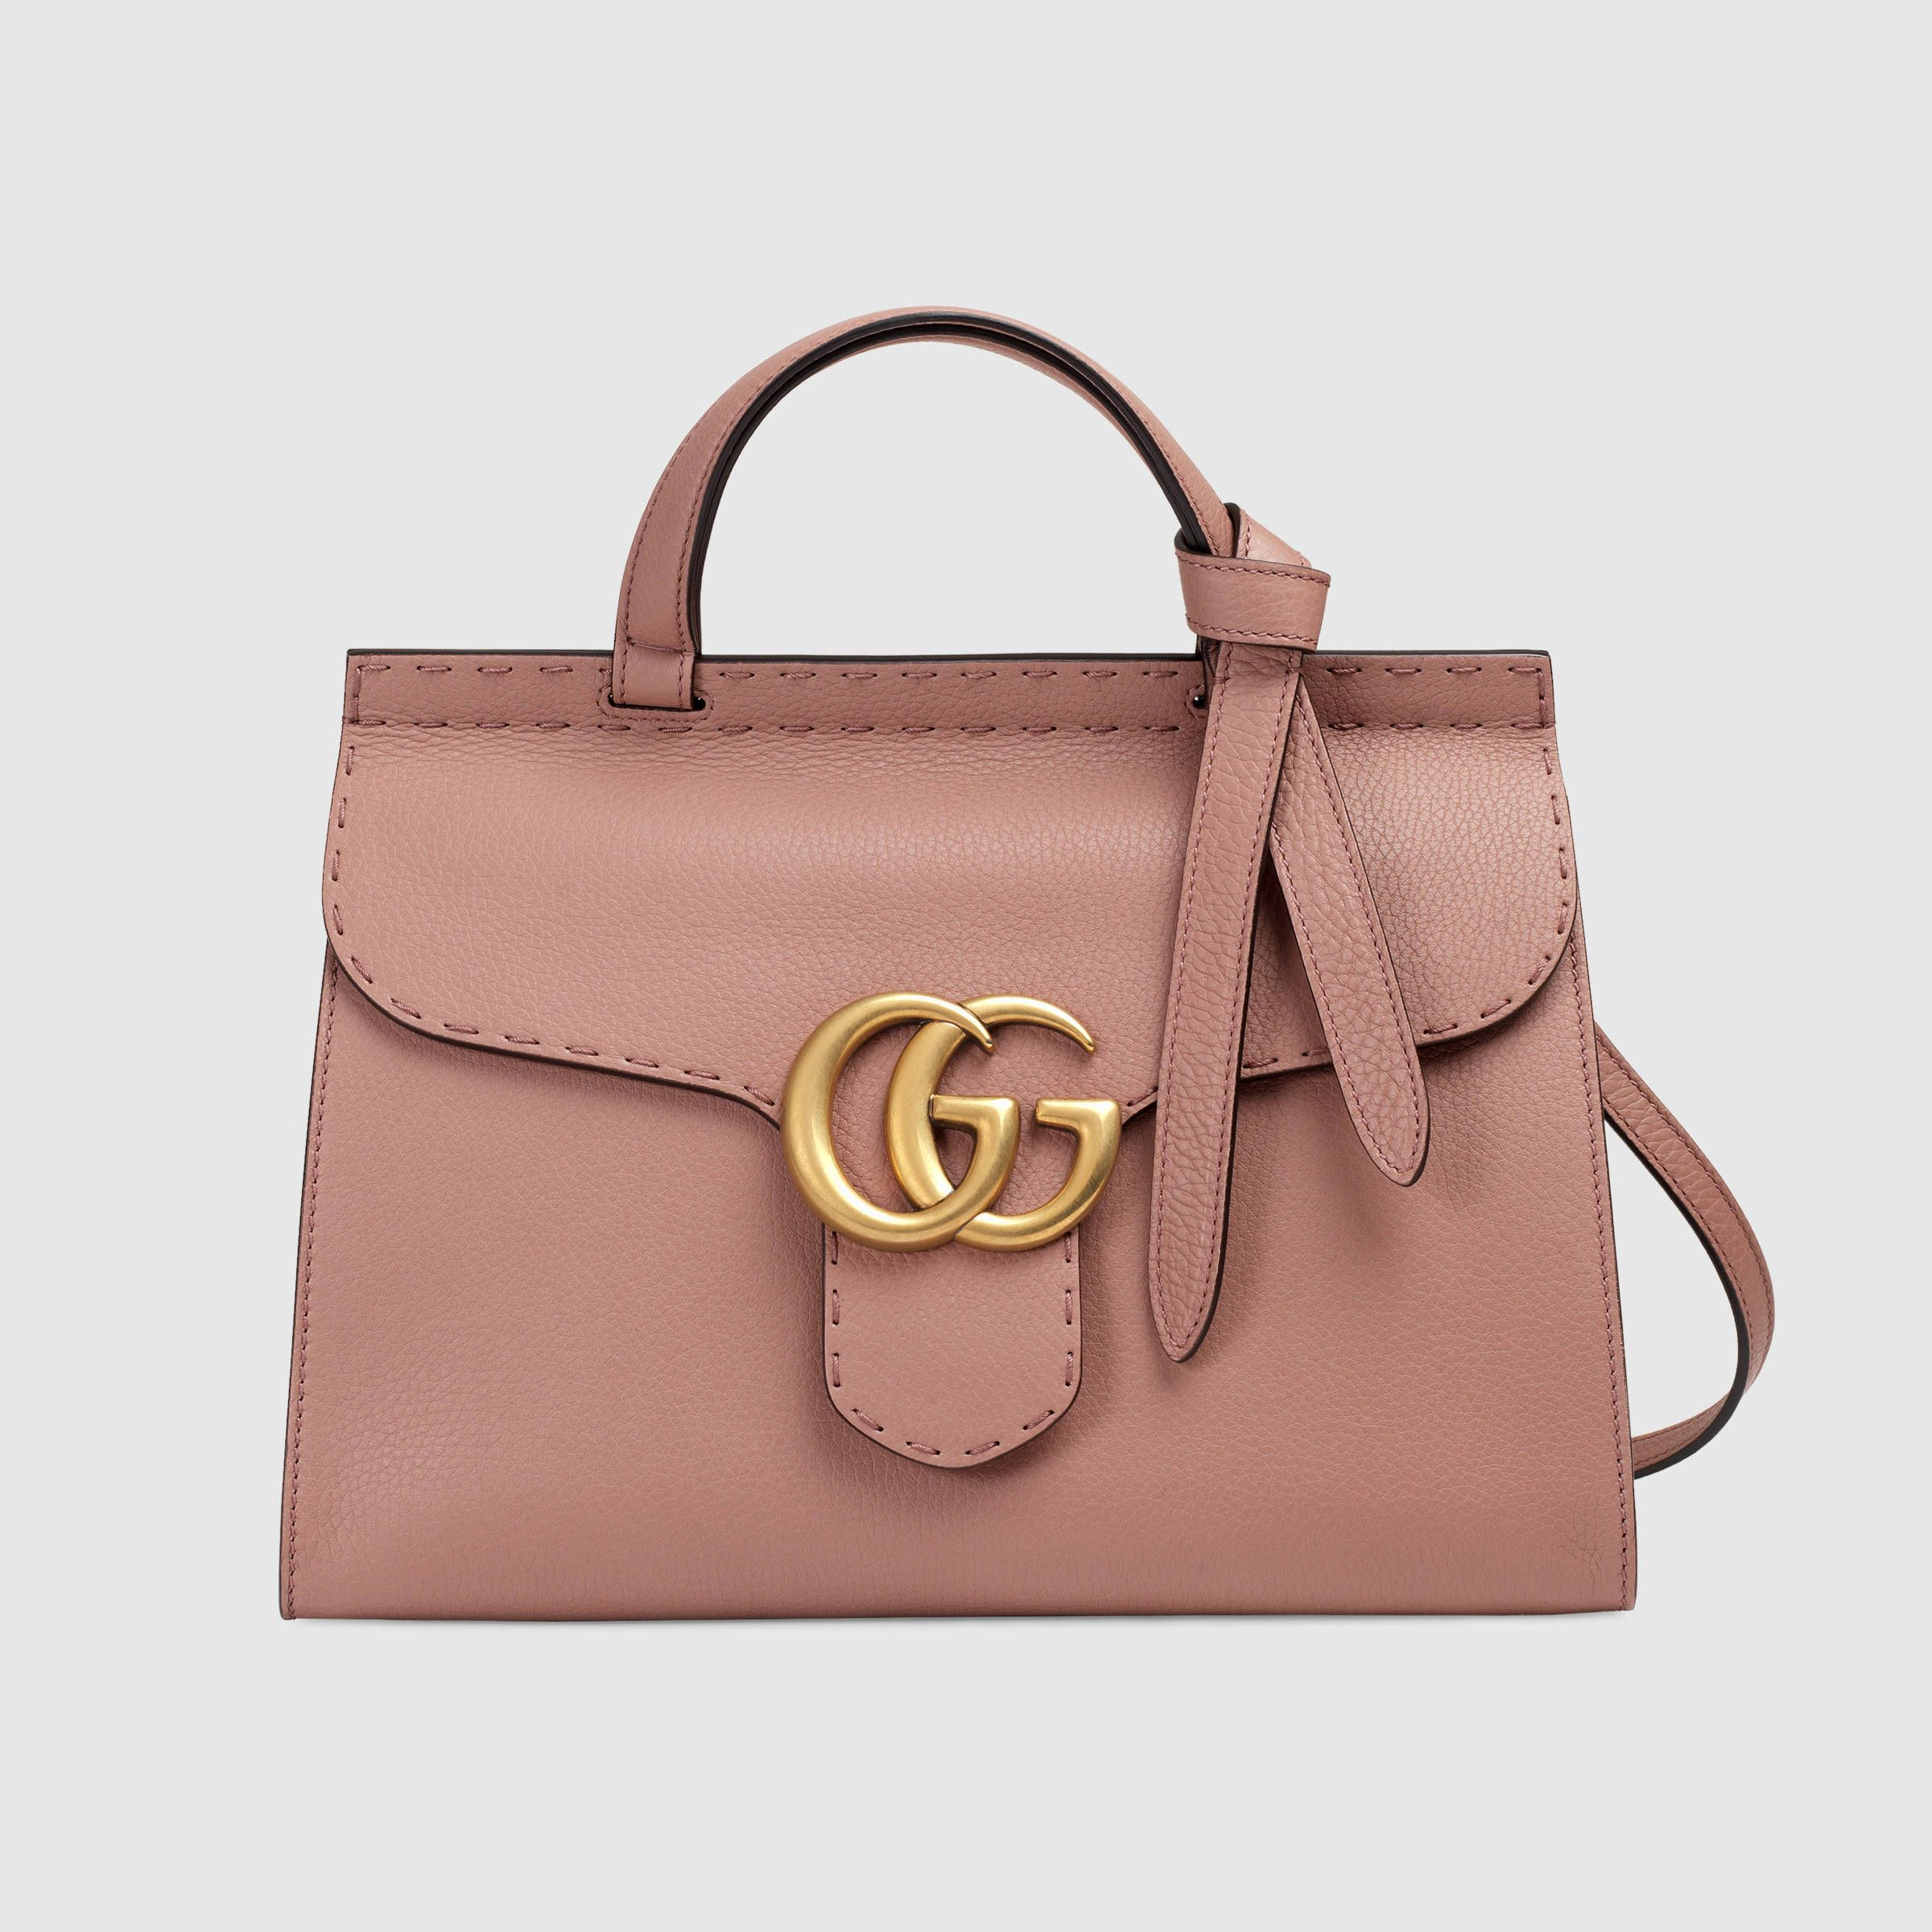 0debcadd25 Gucci Women - GG Marmont leather top handle bag - 421890A7M0B6813